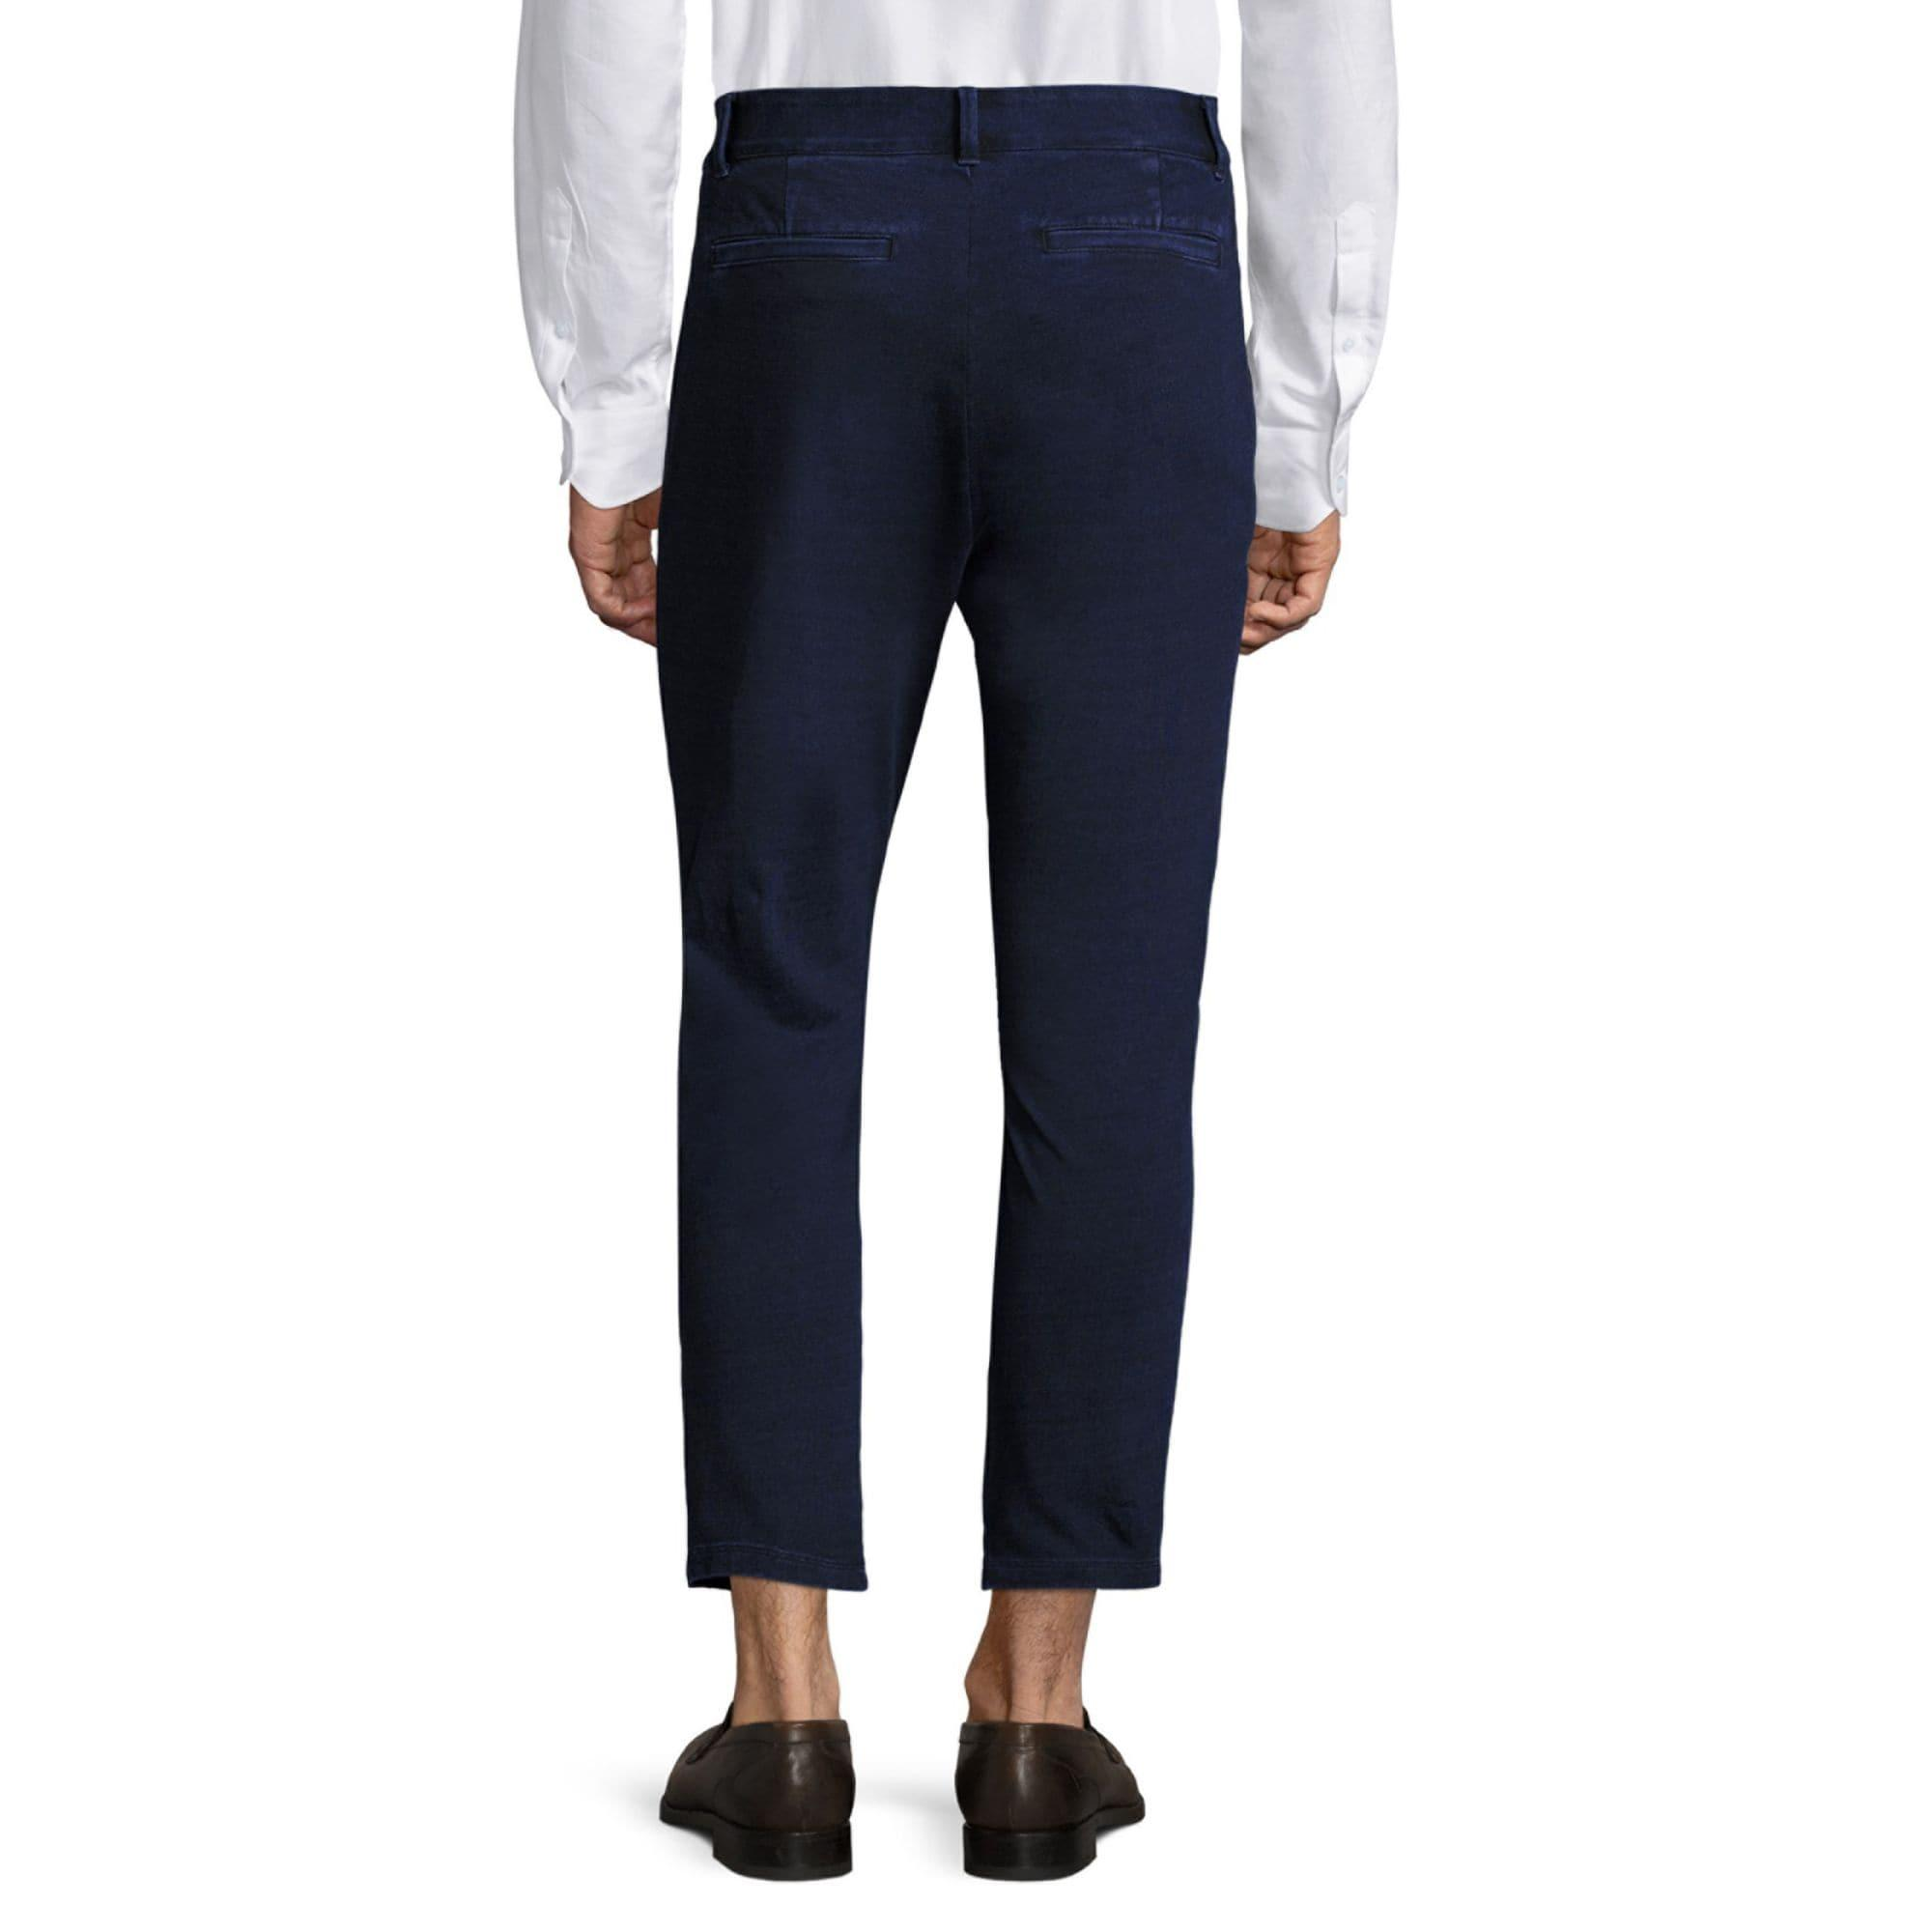 AG Jeans Cotton Regular-fit Ankle Length Sulfur Trousers in Navy (Blue) for Men